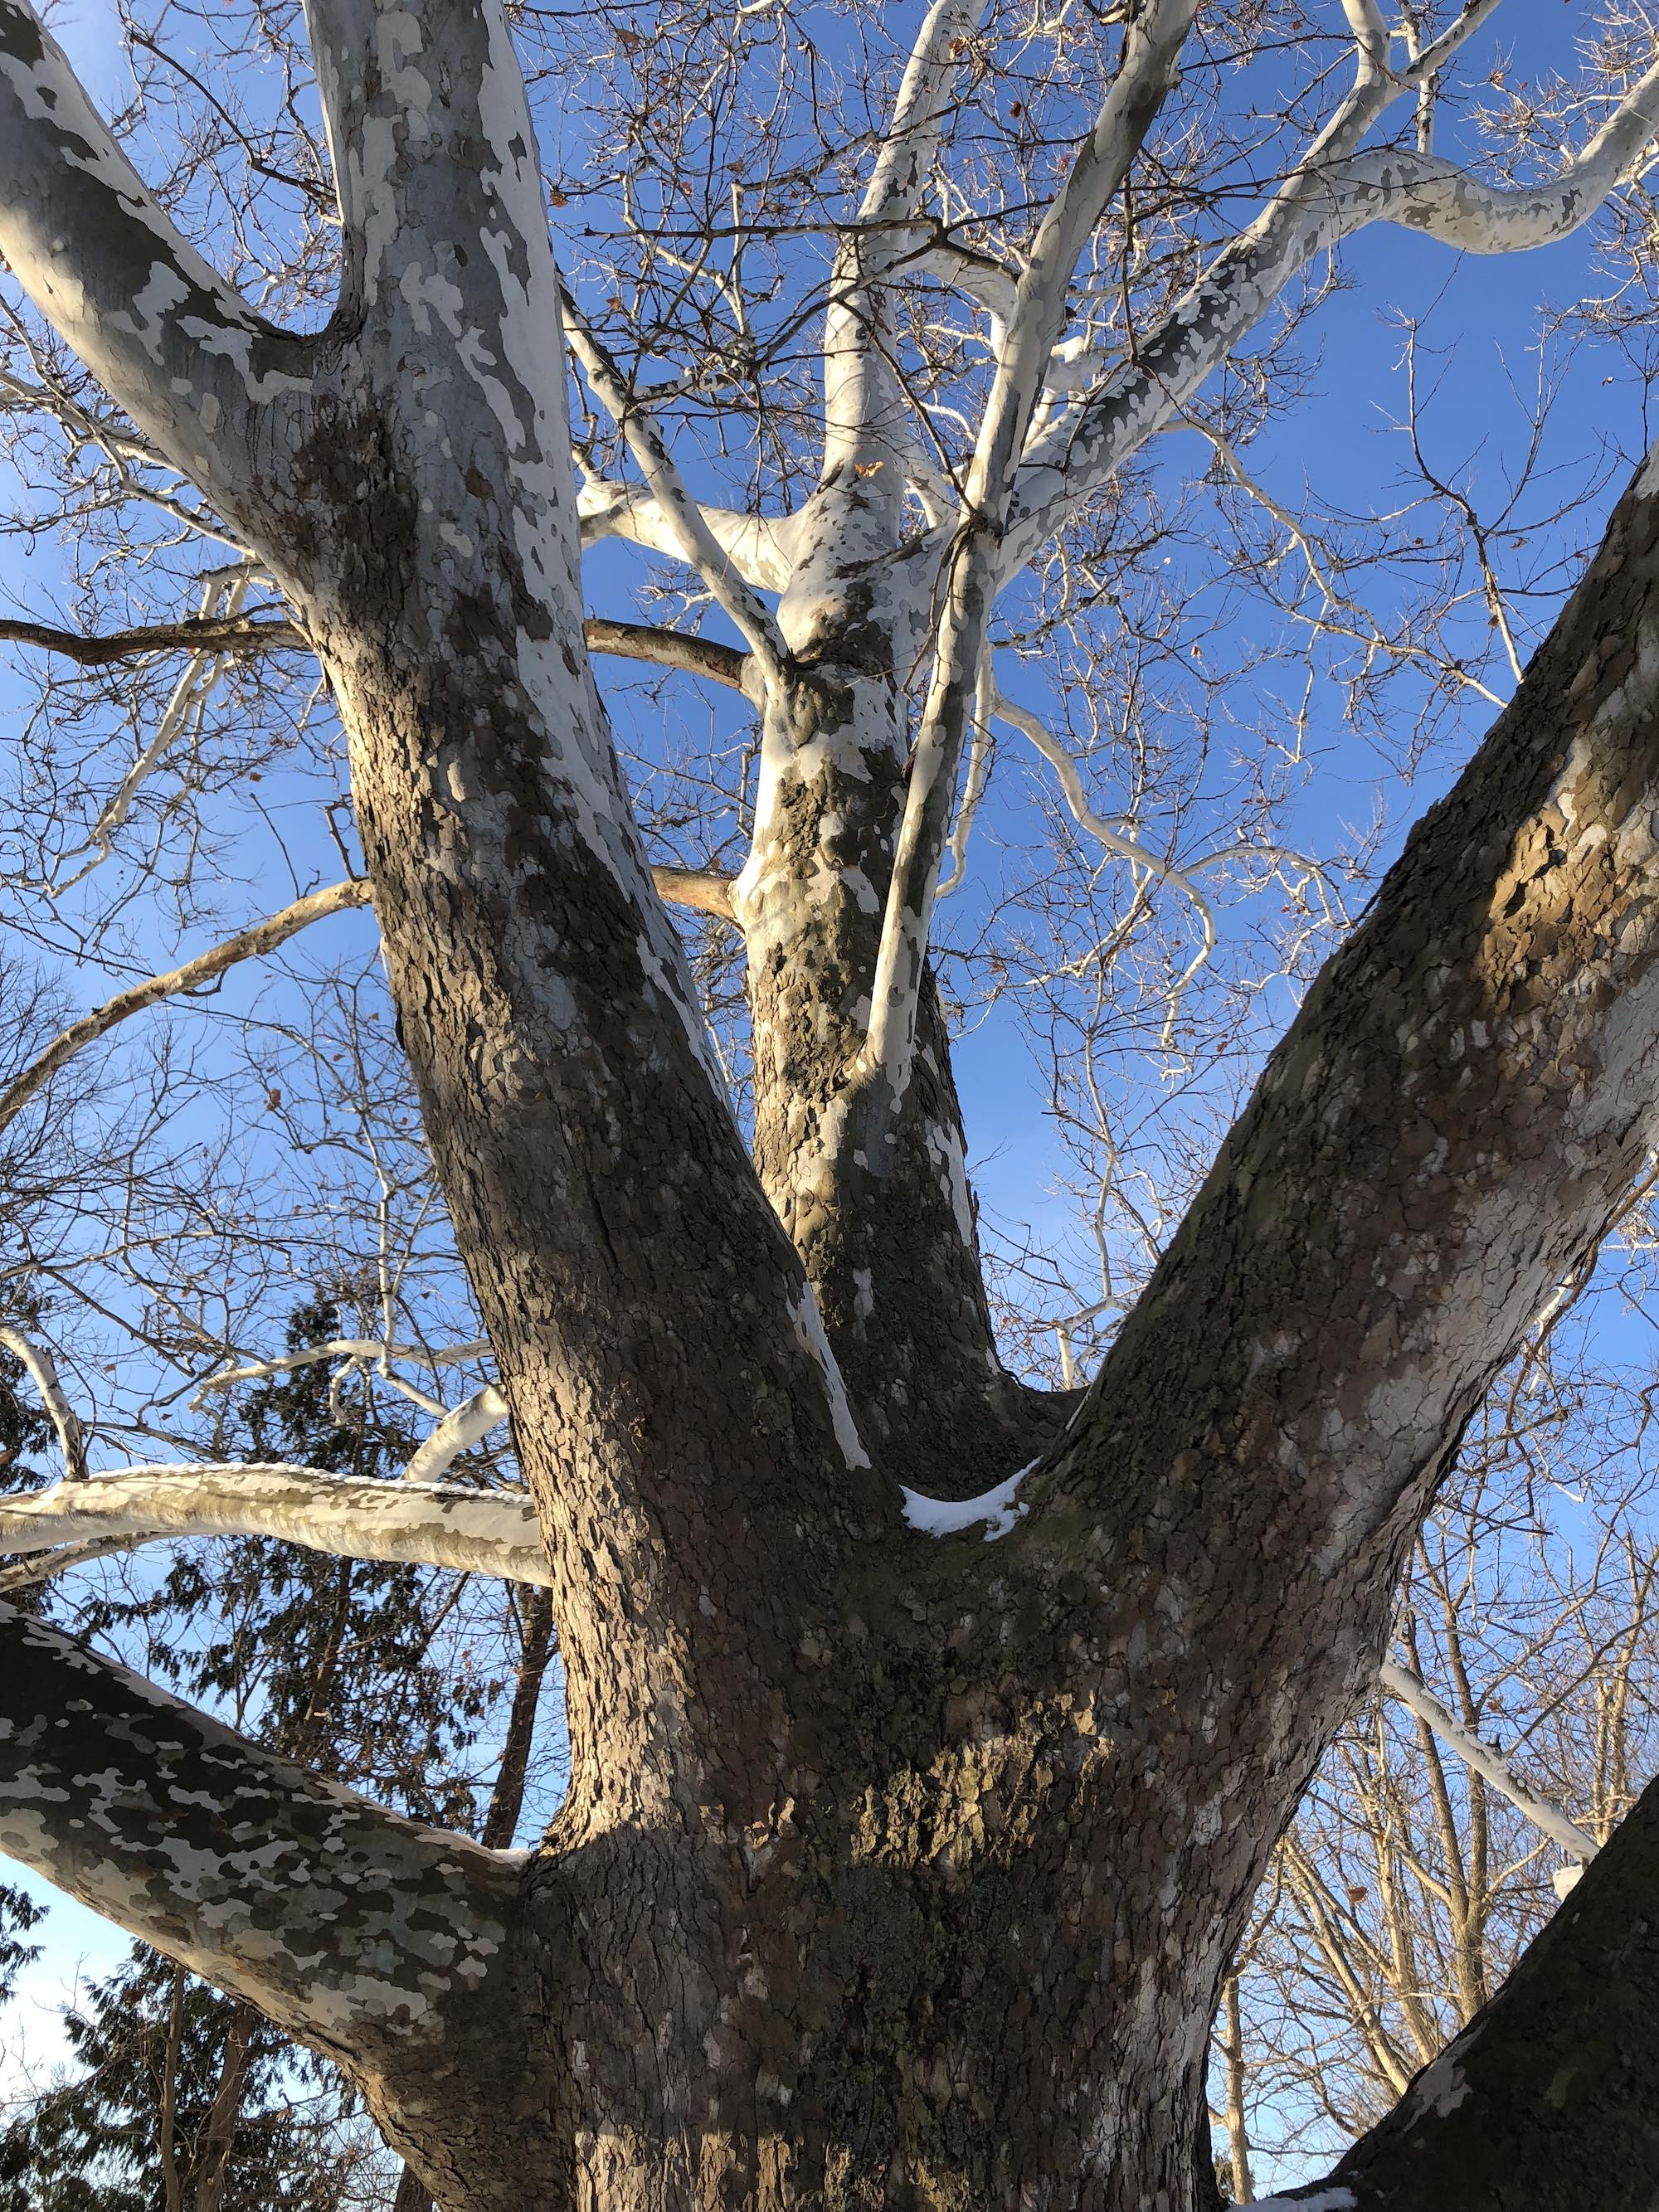 Sycamore tree between Ho-Nee-Um Pond and Arbor Drive on north shore of Lake Wingra on March 7, 2018.